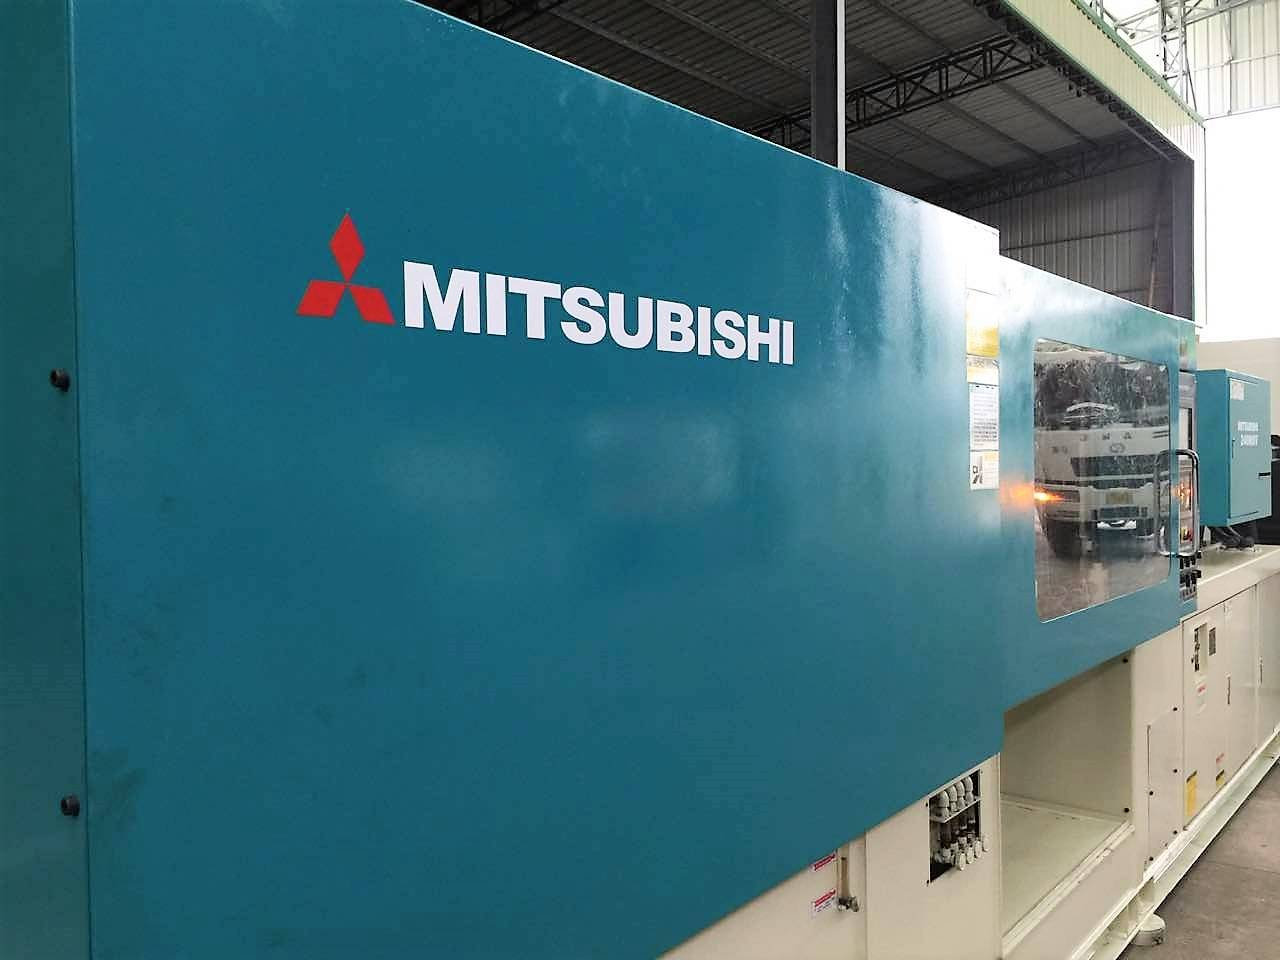 Mitsubishi 240t (240MSV) used Injection Molding Machine